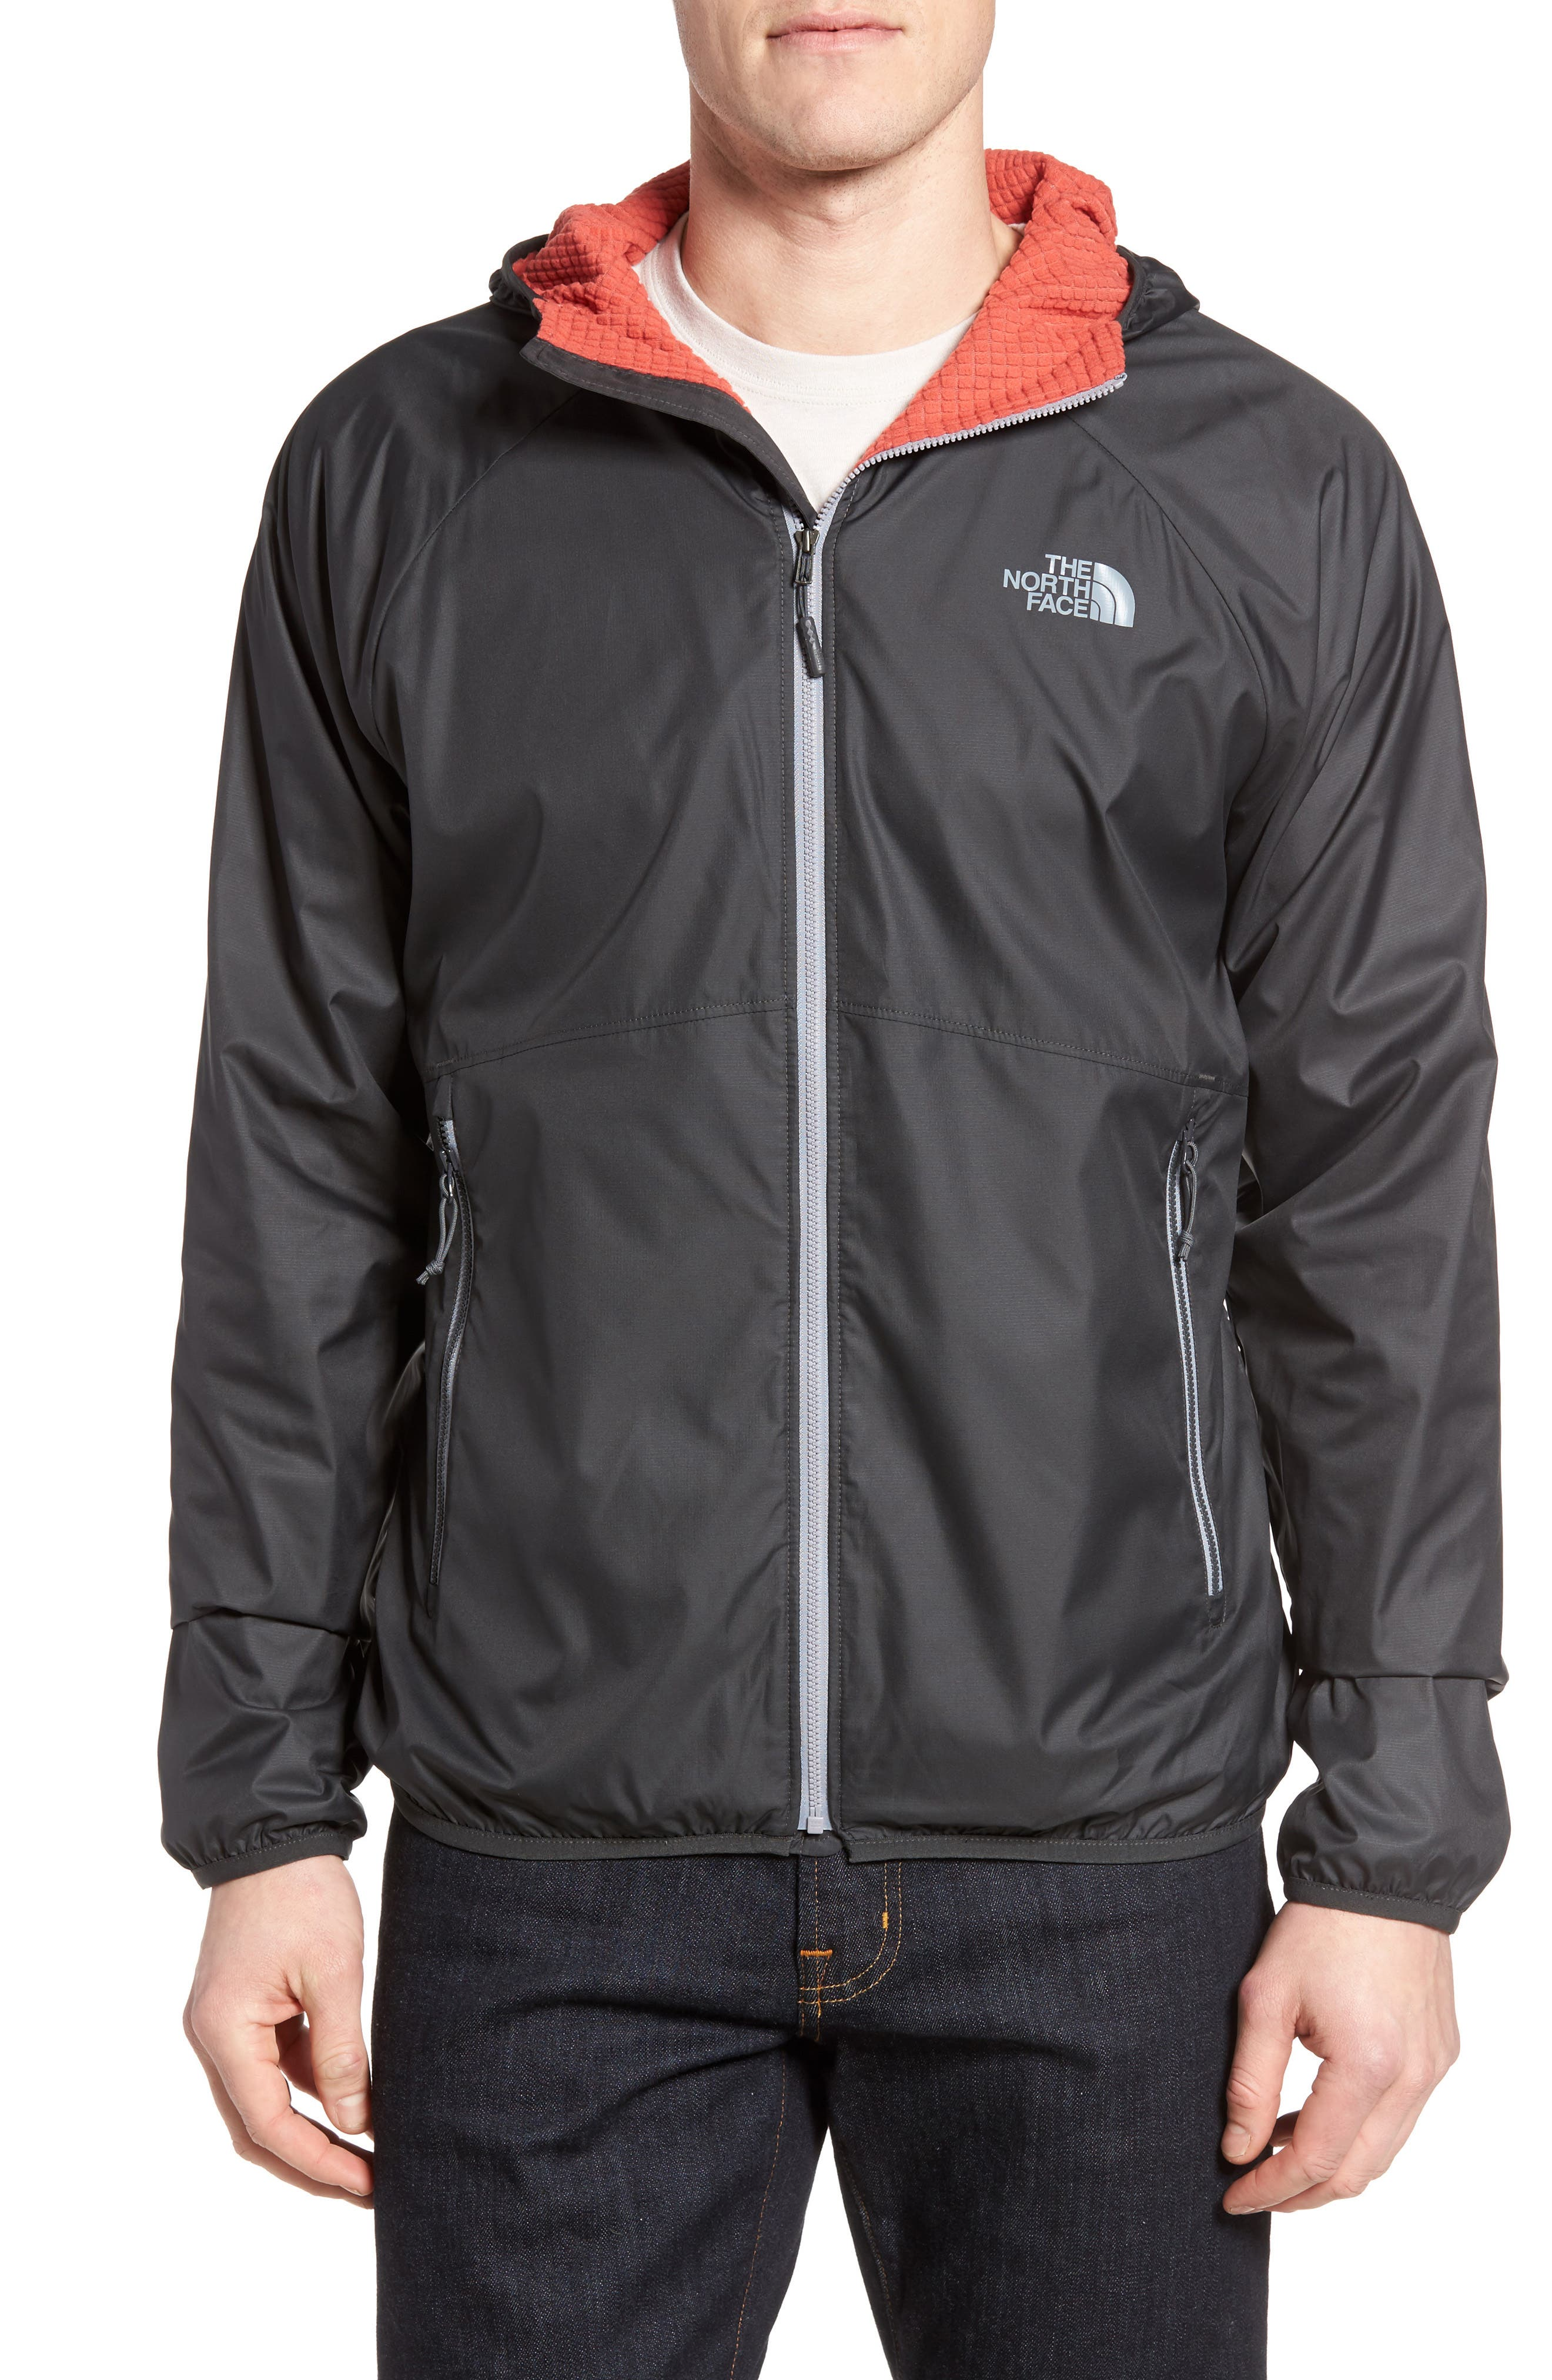 THE NORTH FACE Desmond WindWall<sup>®</sup> Jacket